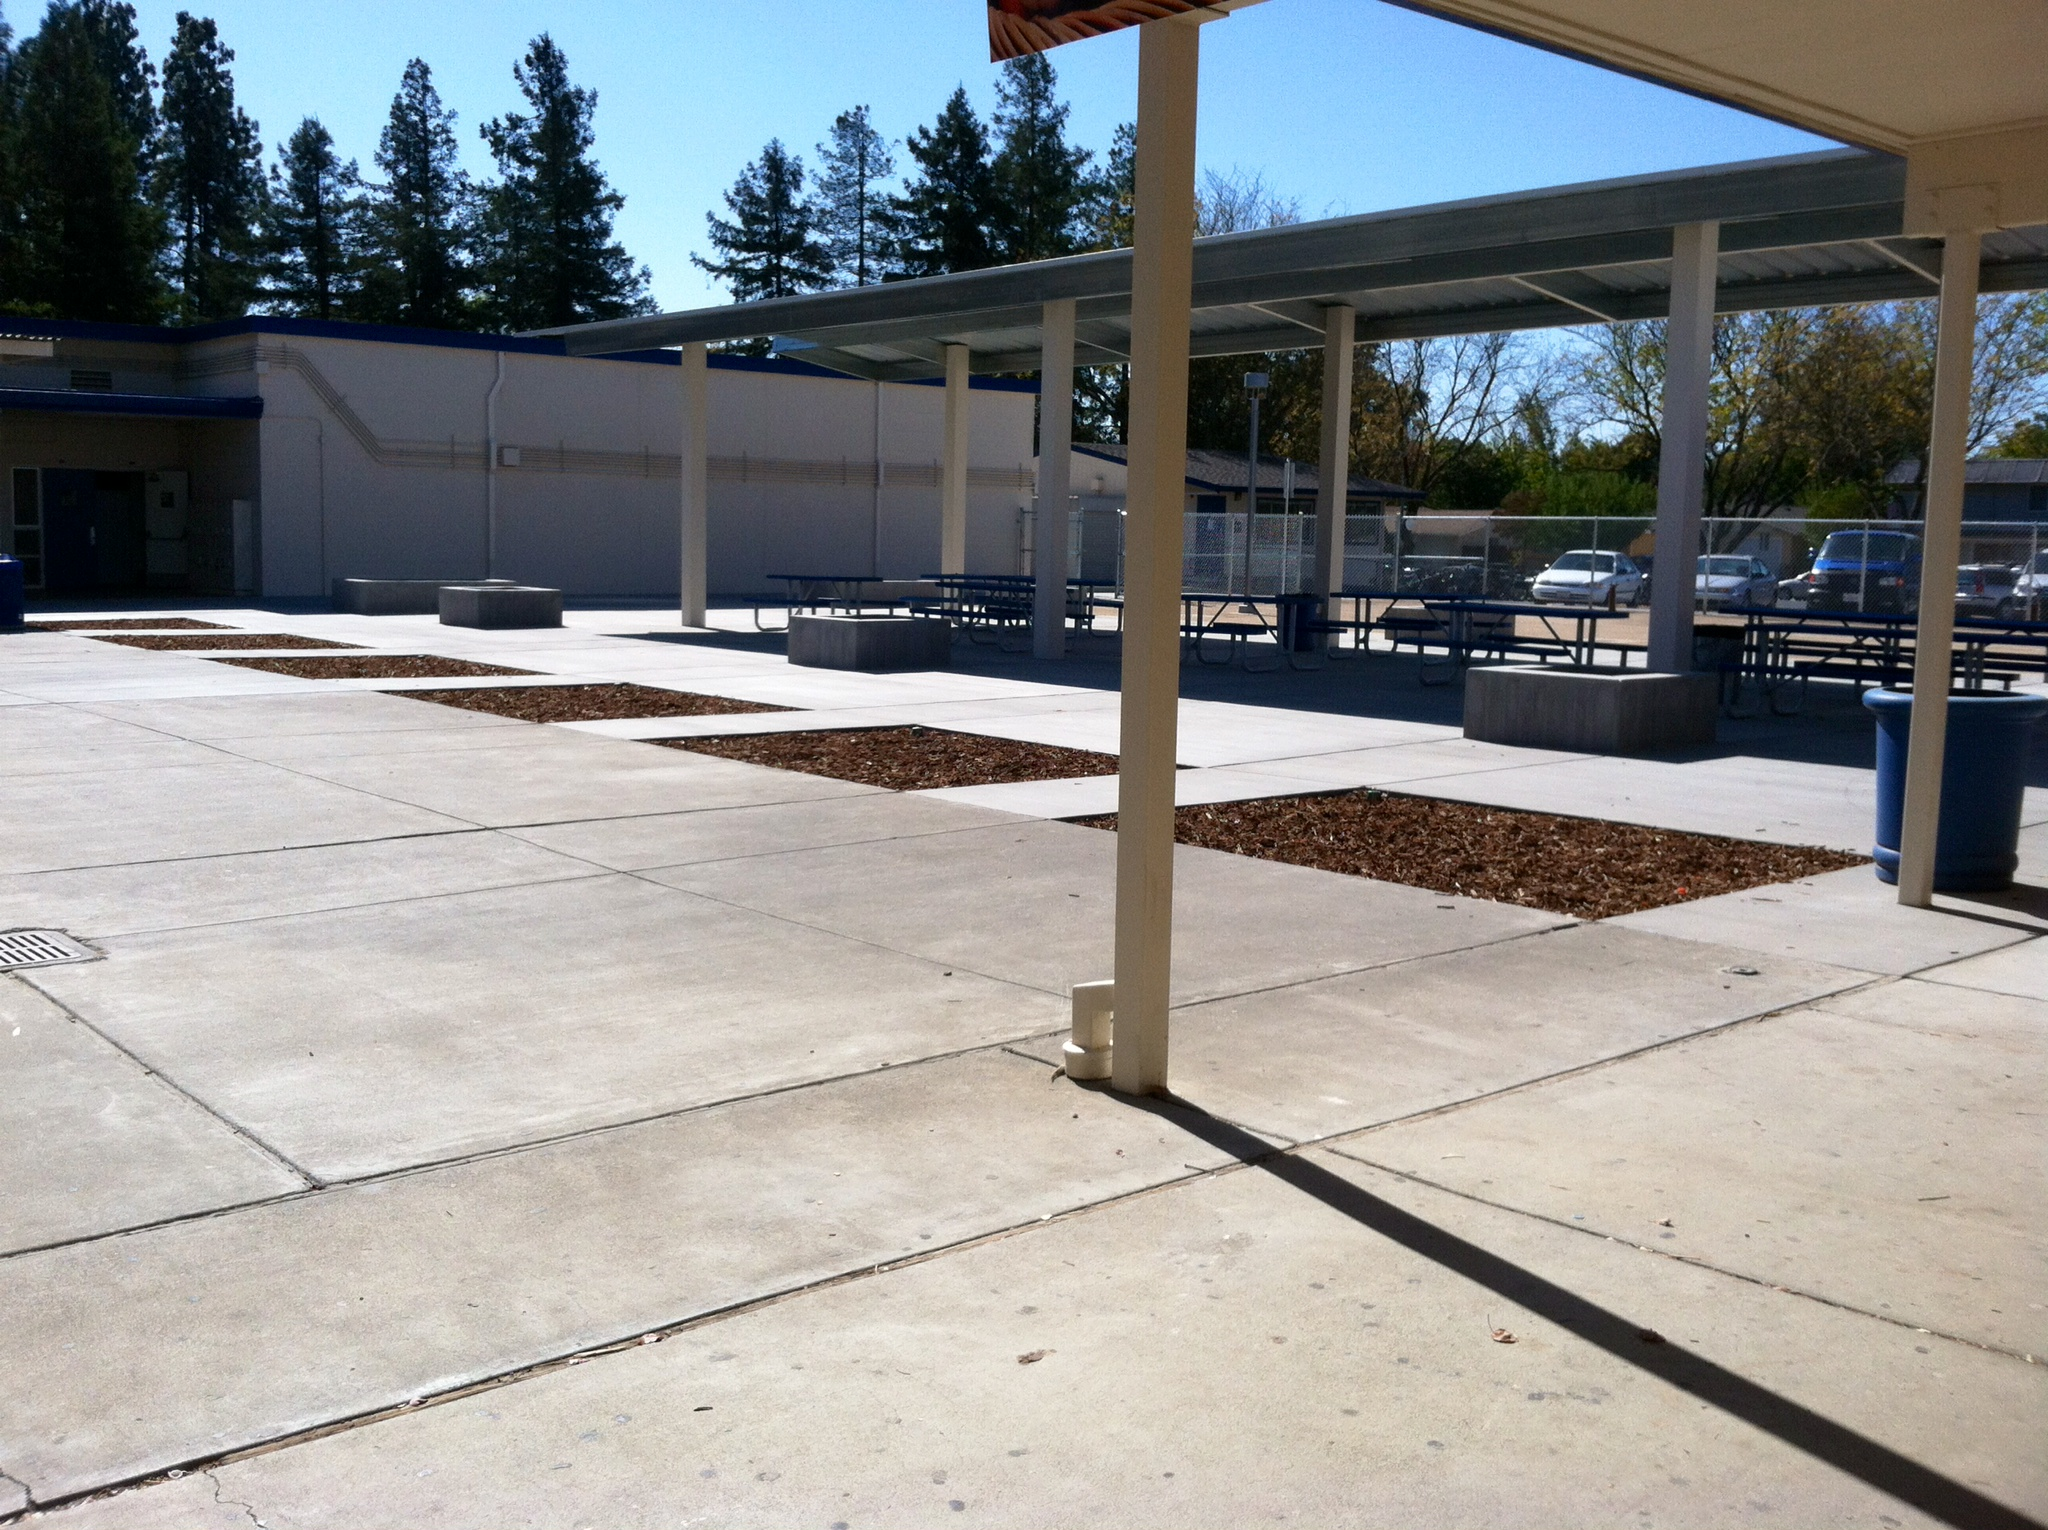 Lack of MPR leaves students without shelter